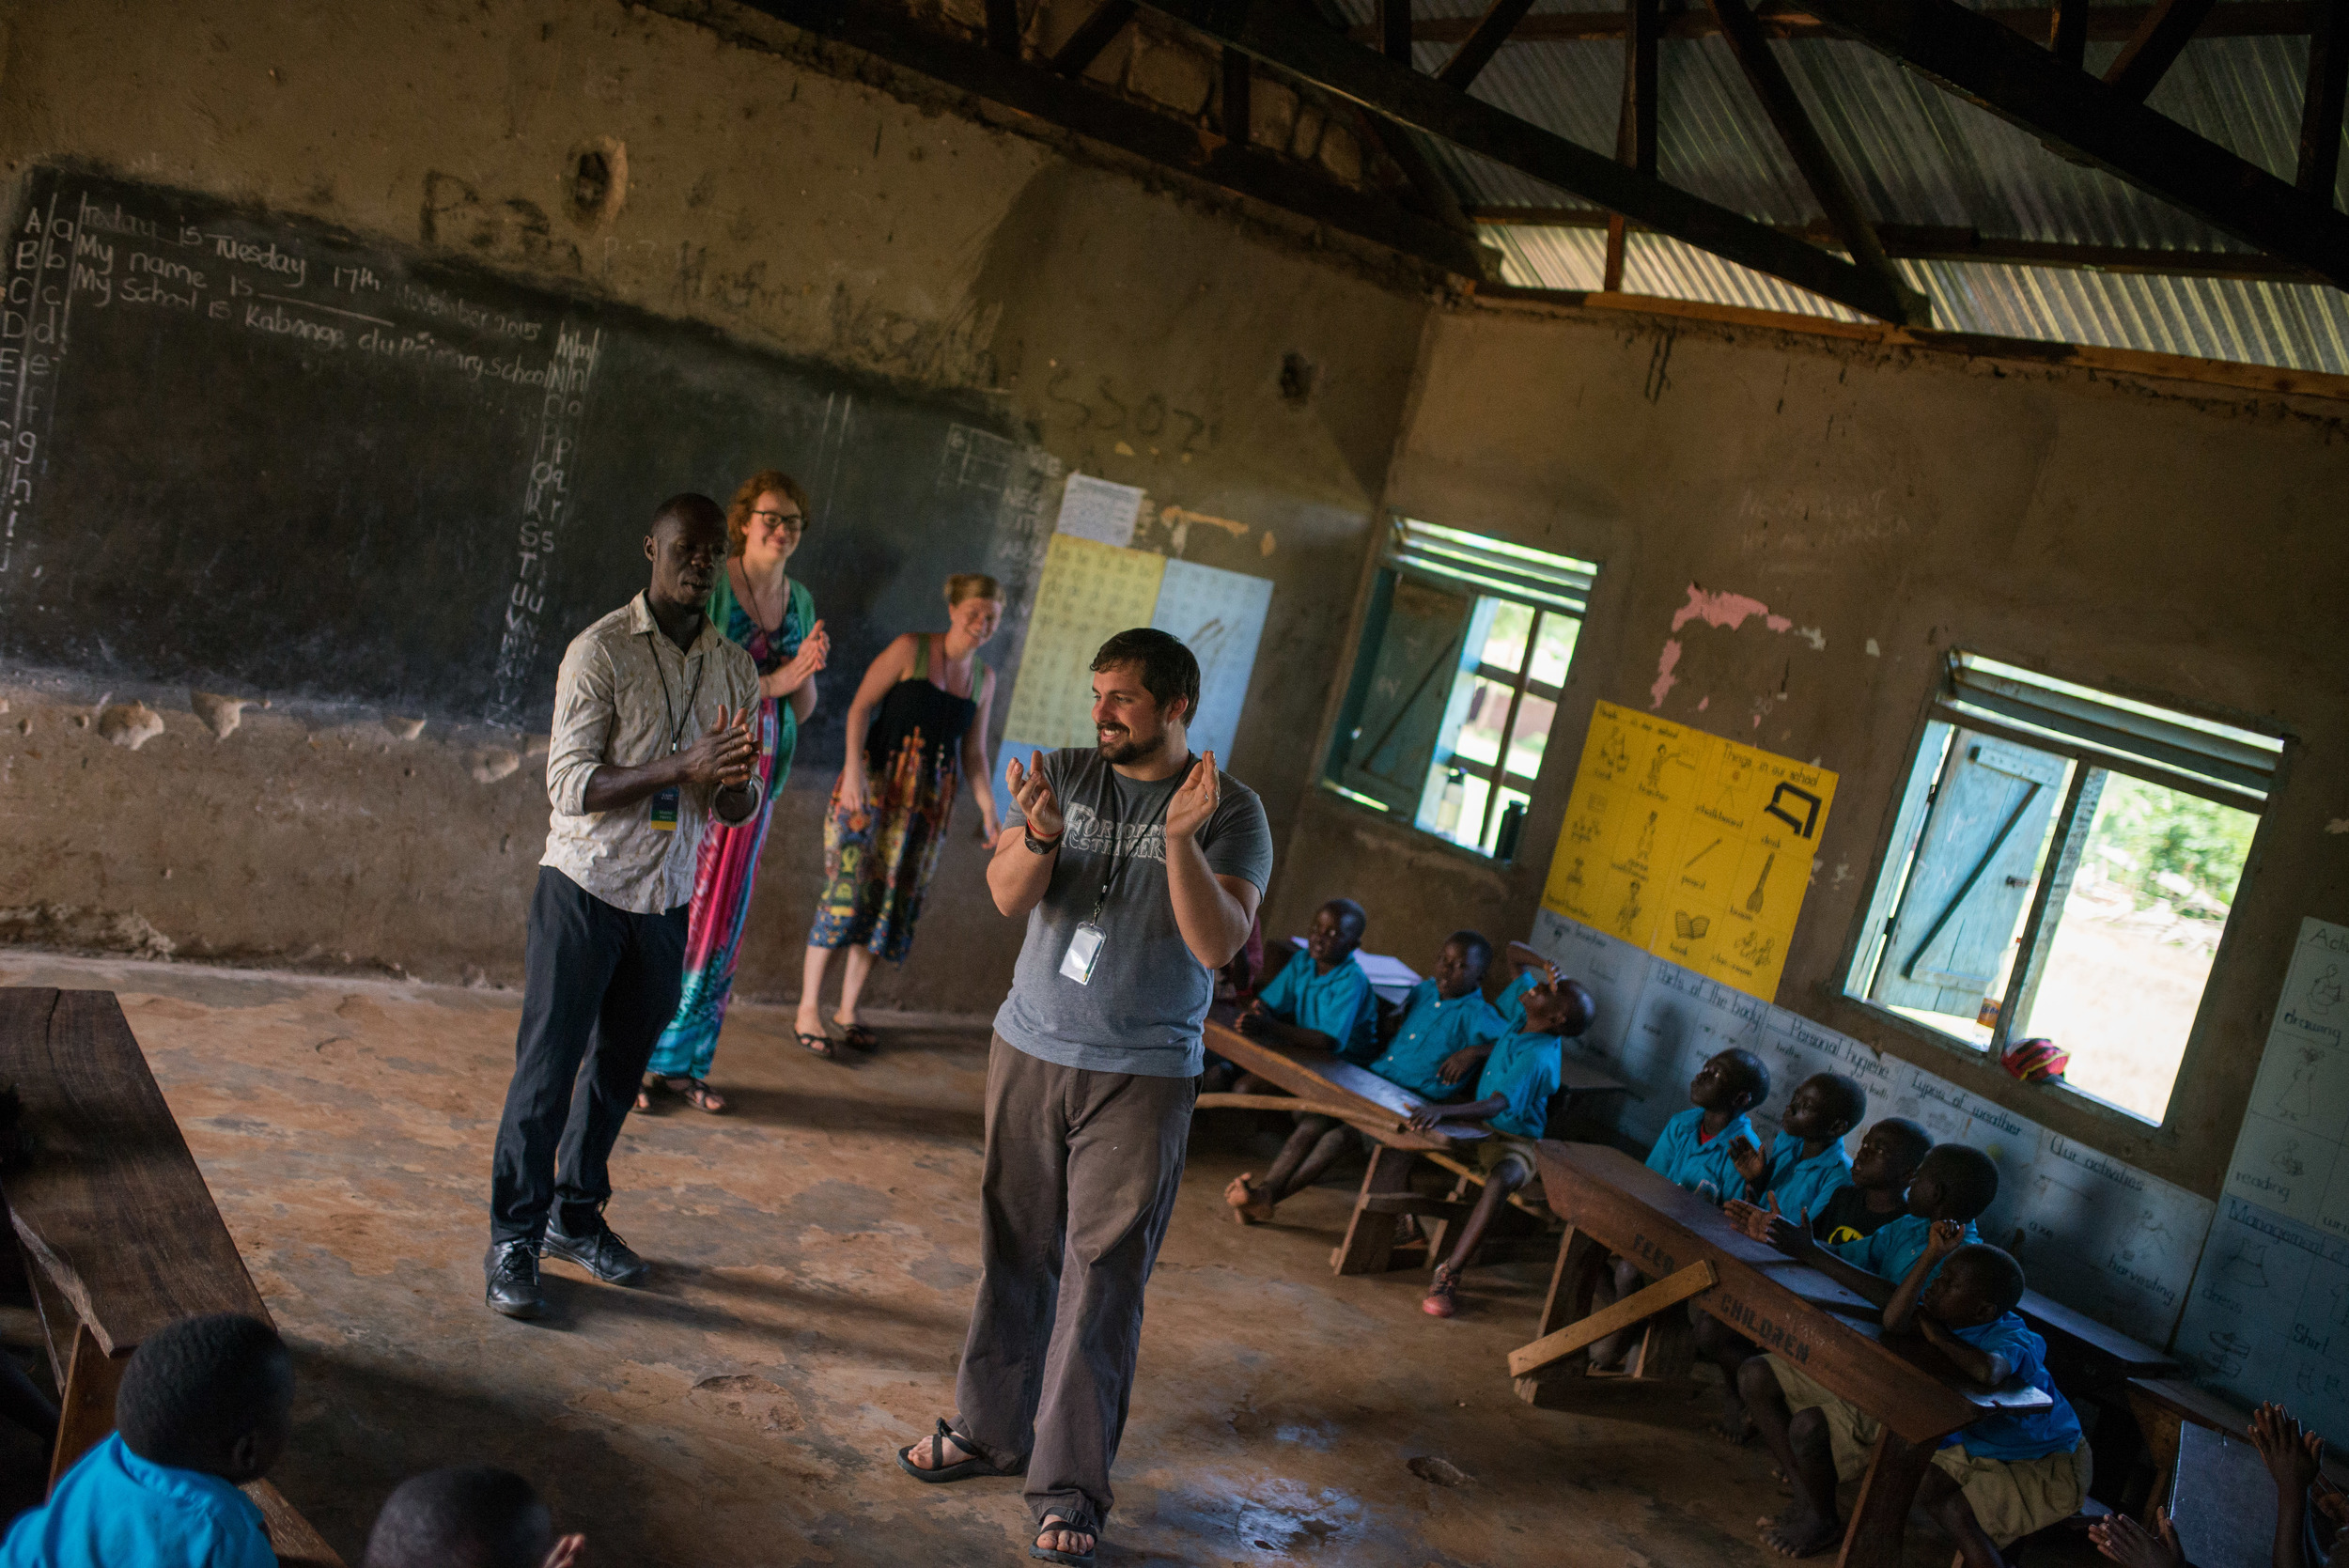 Nick Moore, assisted by Henry, Kara and Christina, teaches a classroom of kids a preventative health lesson. Throughout the week, topics included malaria prevention, hand washing, personal hygiene and more. Here, they are all clapping for a correct answer about malaria.